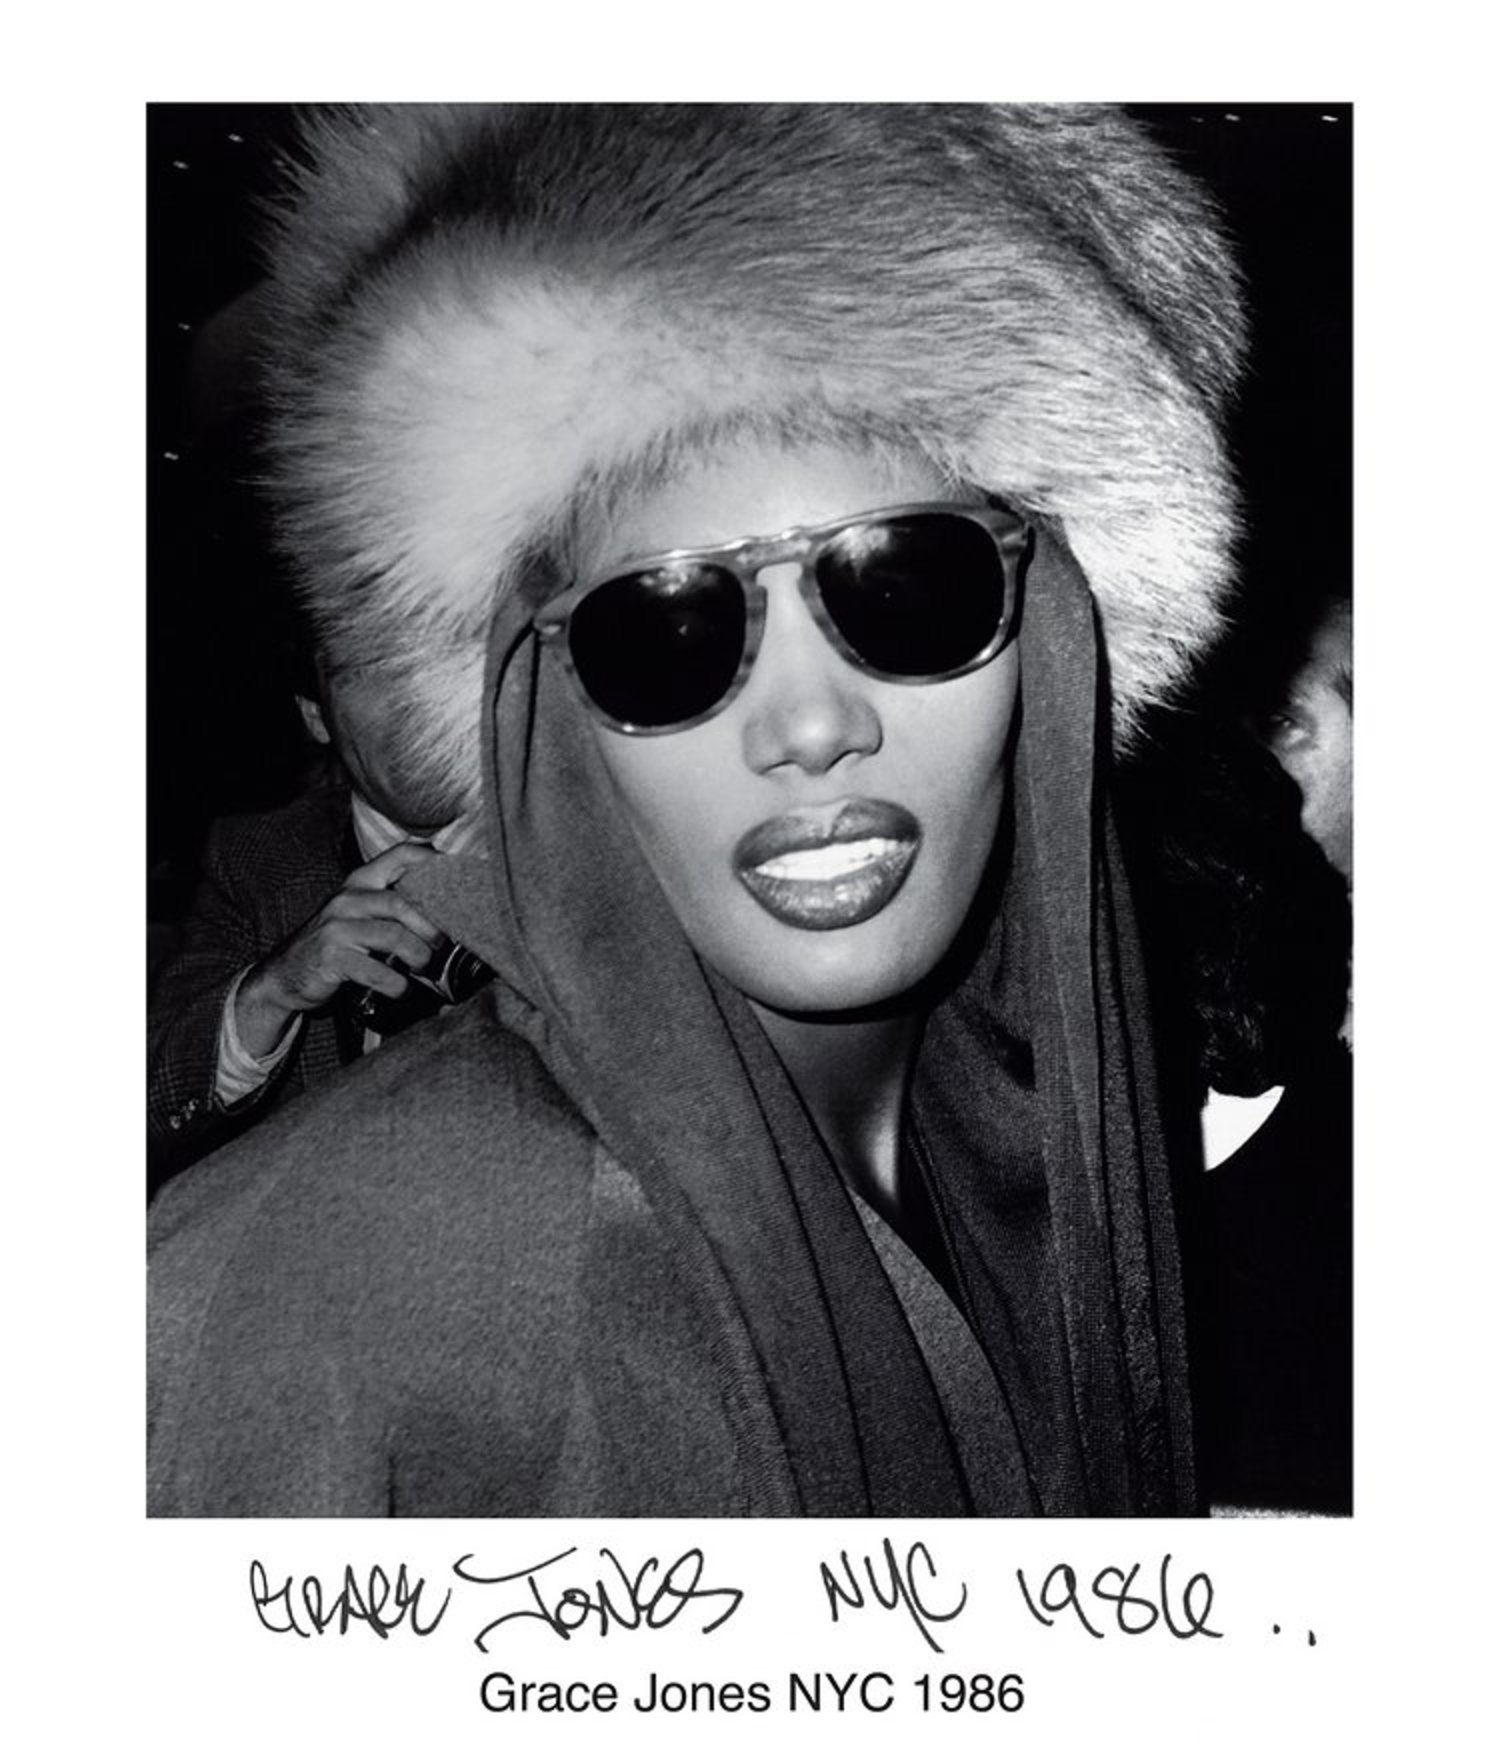 Grace Jones NYC 1986